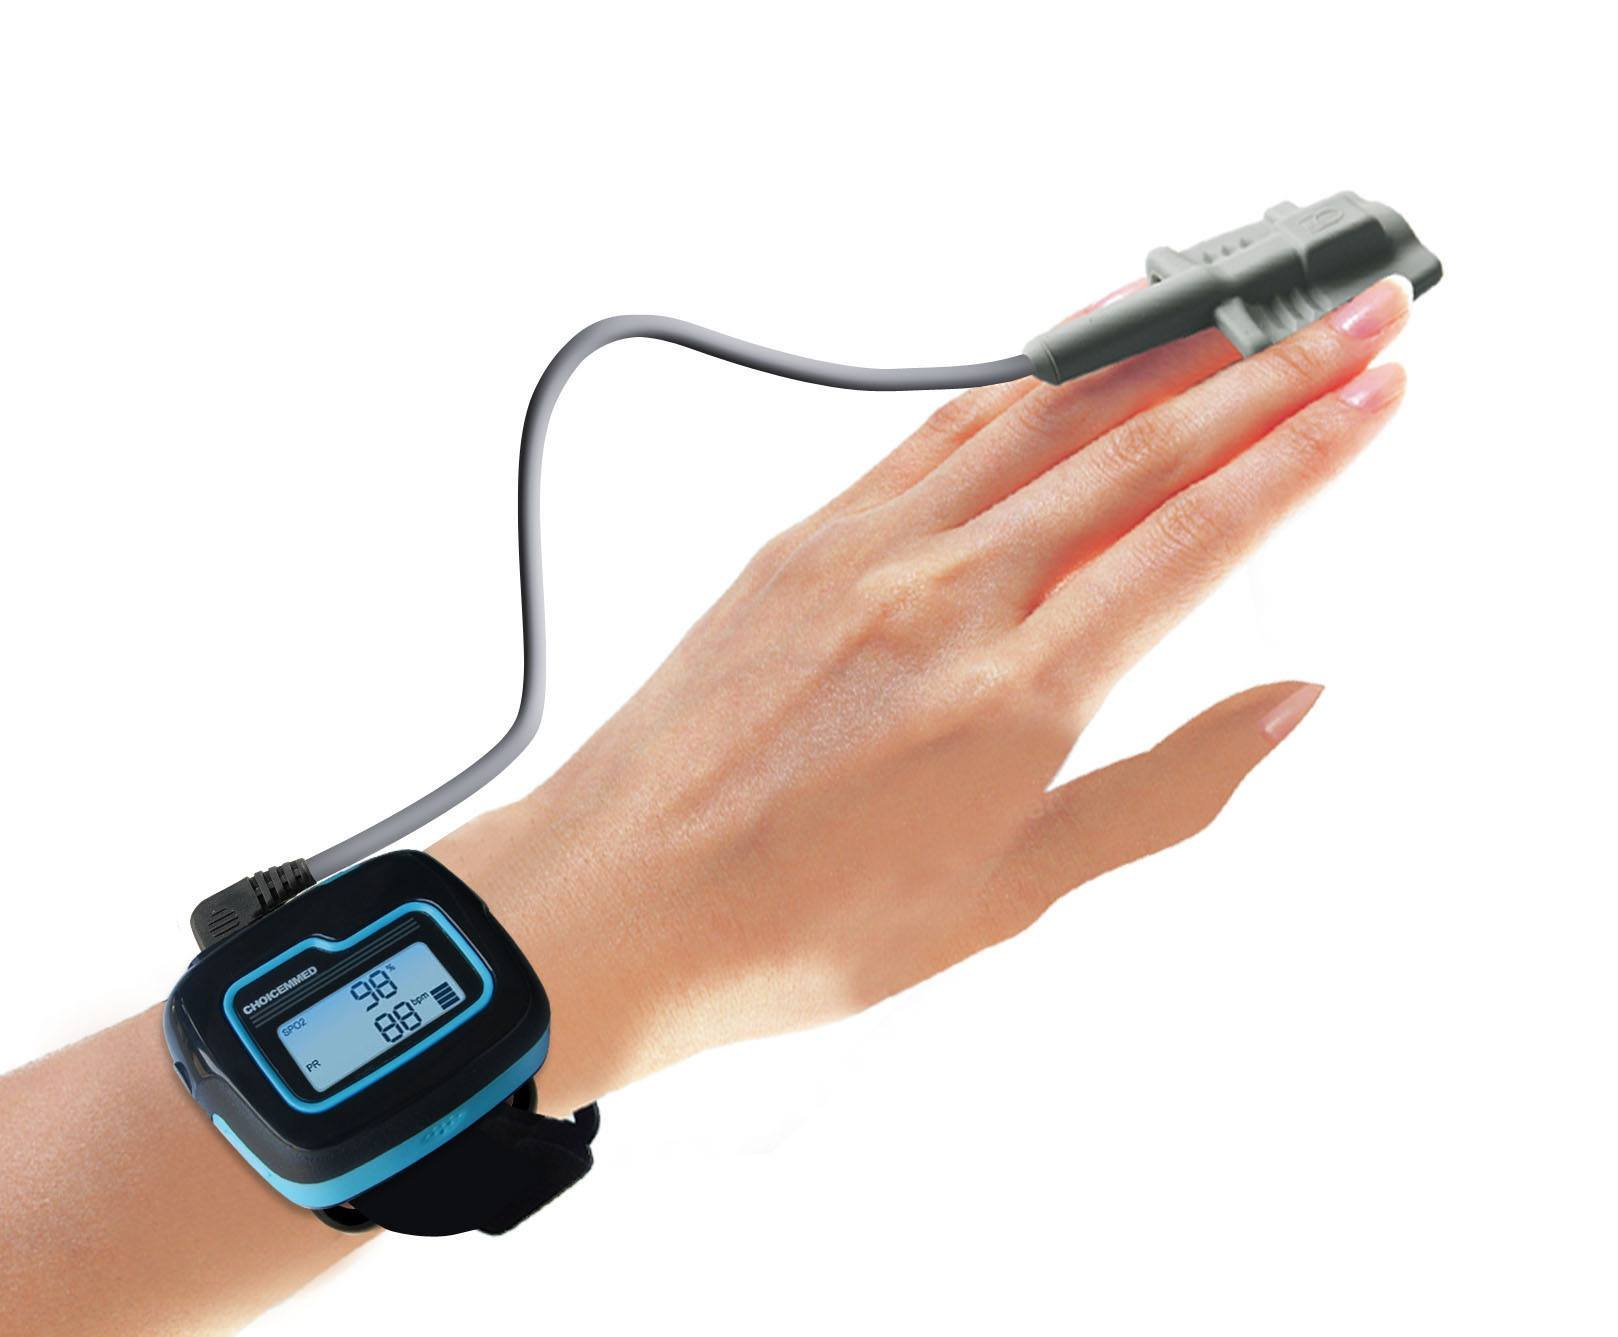 FDA Cleared Wrist Pulse Oximeter Overnight Home Sleep Detector Watch Sleep SPO2 Oxygen Saturation Heart Rate Monitor Tracker and Recorder with Software for Windows